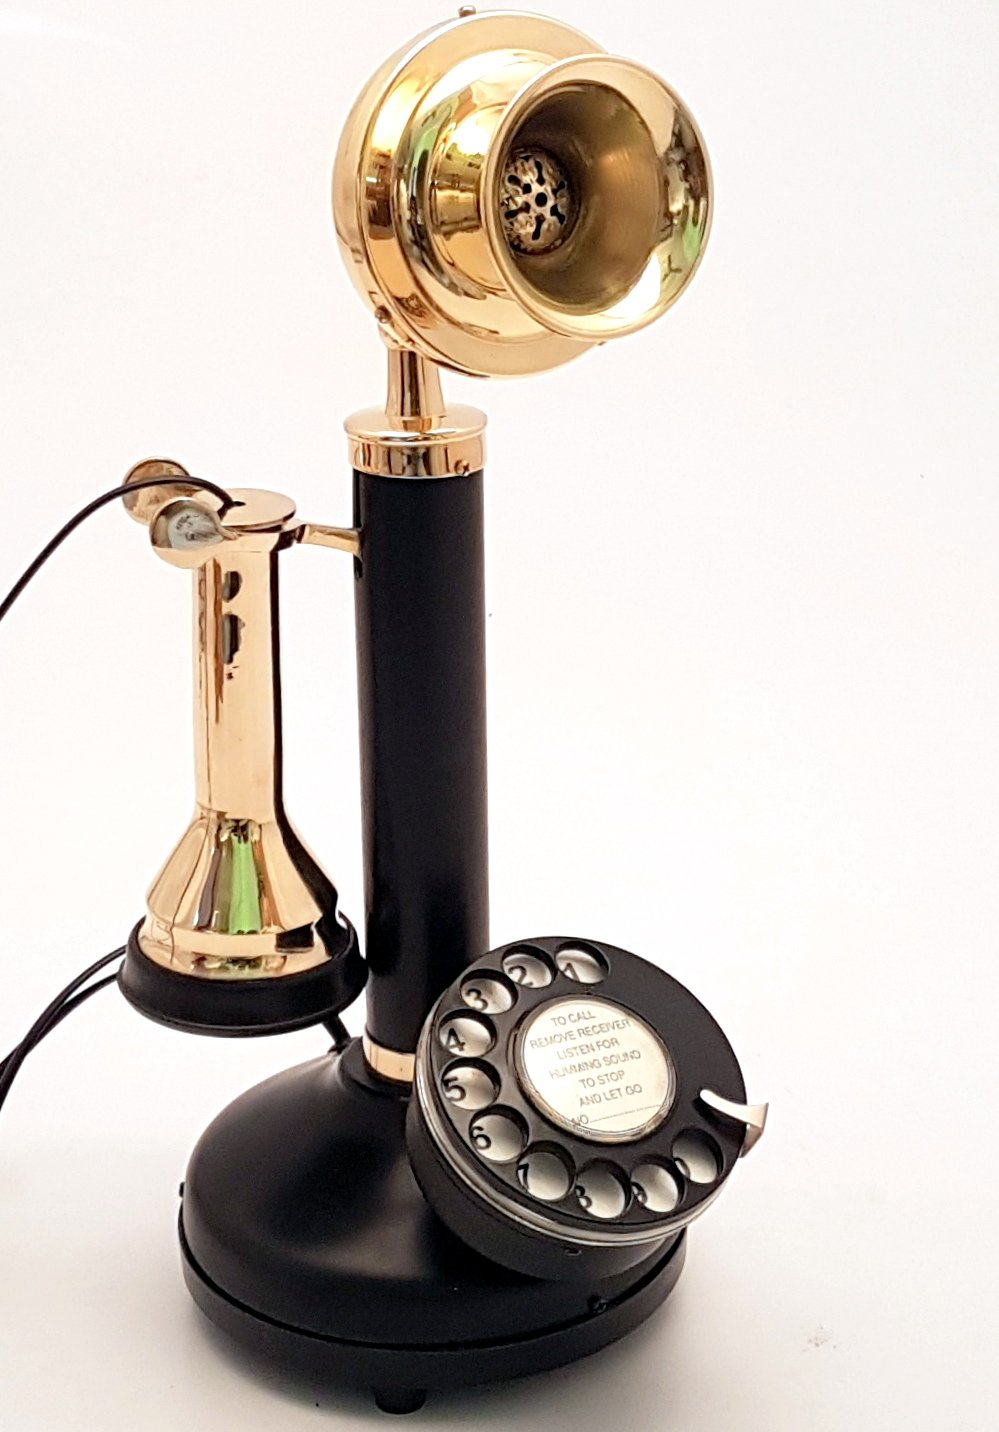 Home Decore Antique Style Rotery Dial Candlestick Telephone in Working Order.